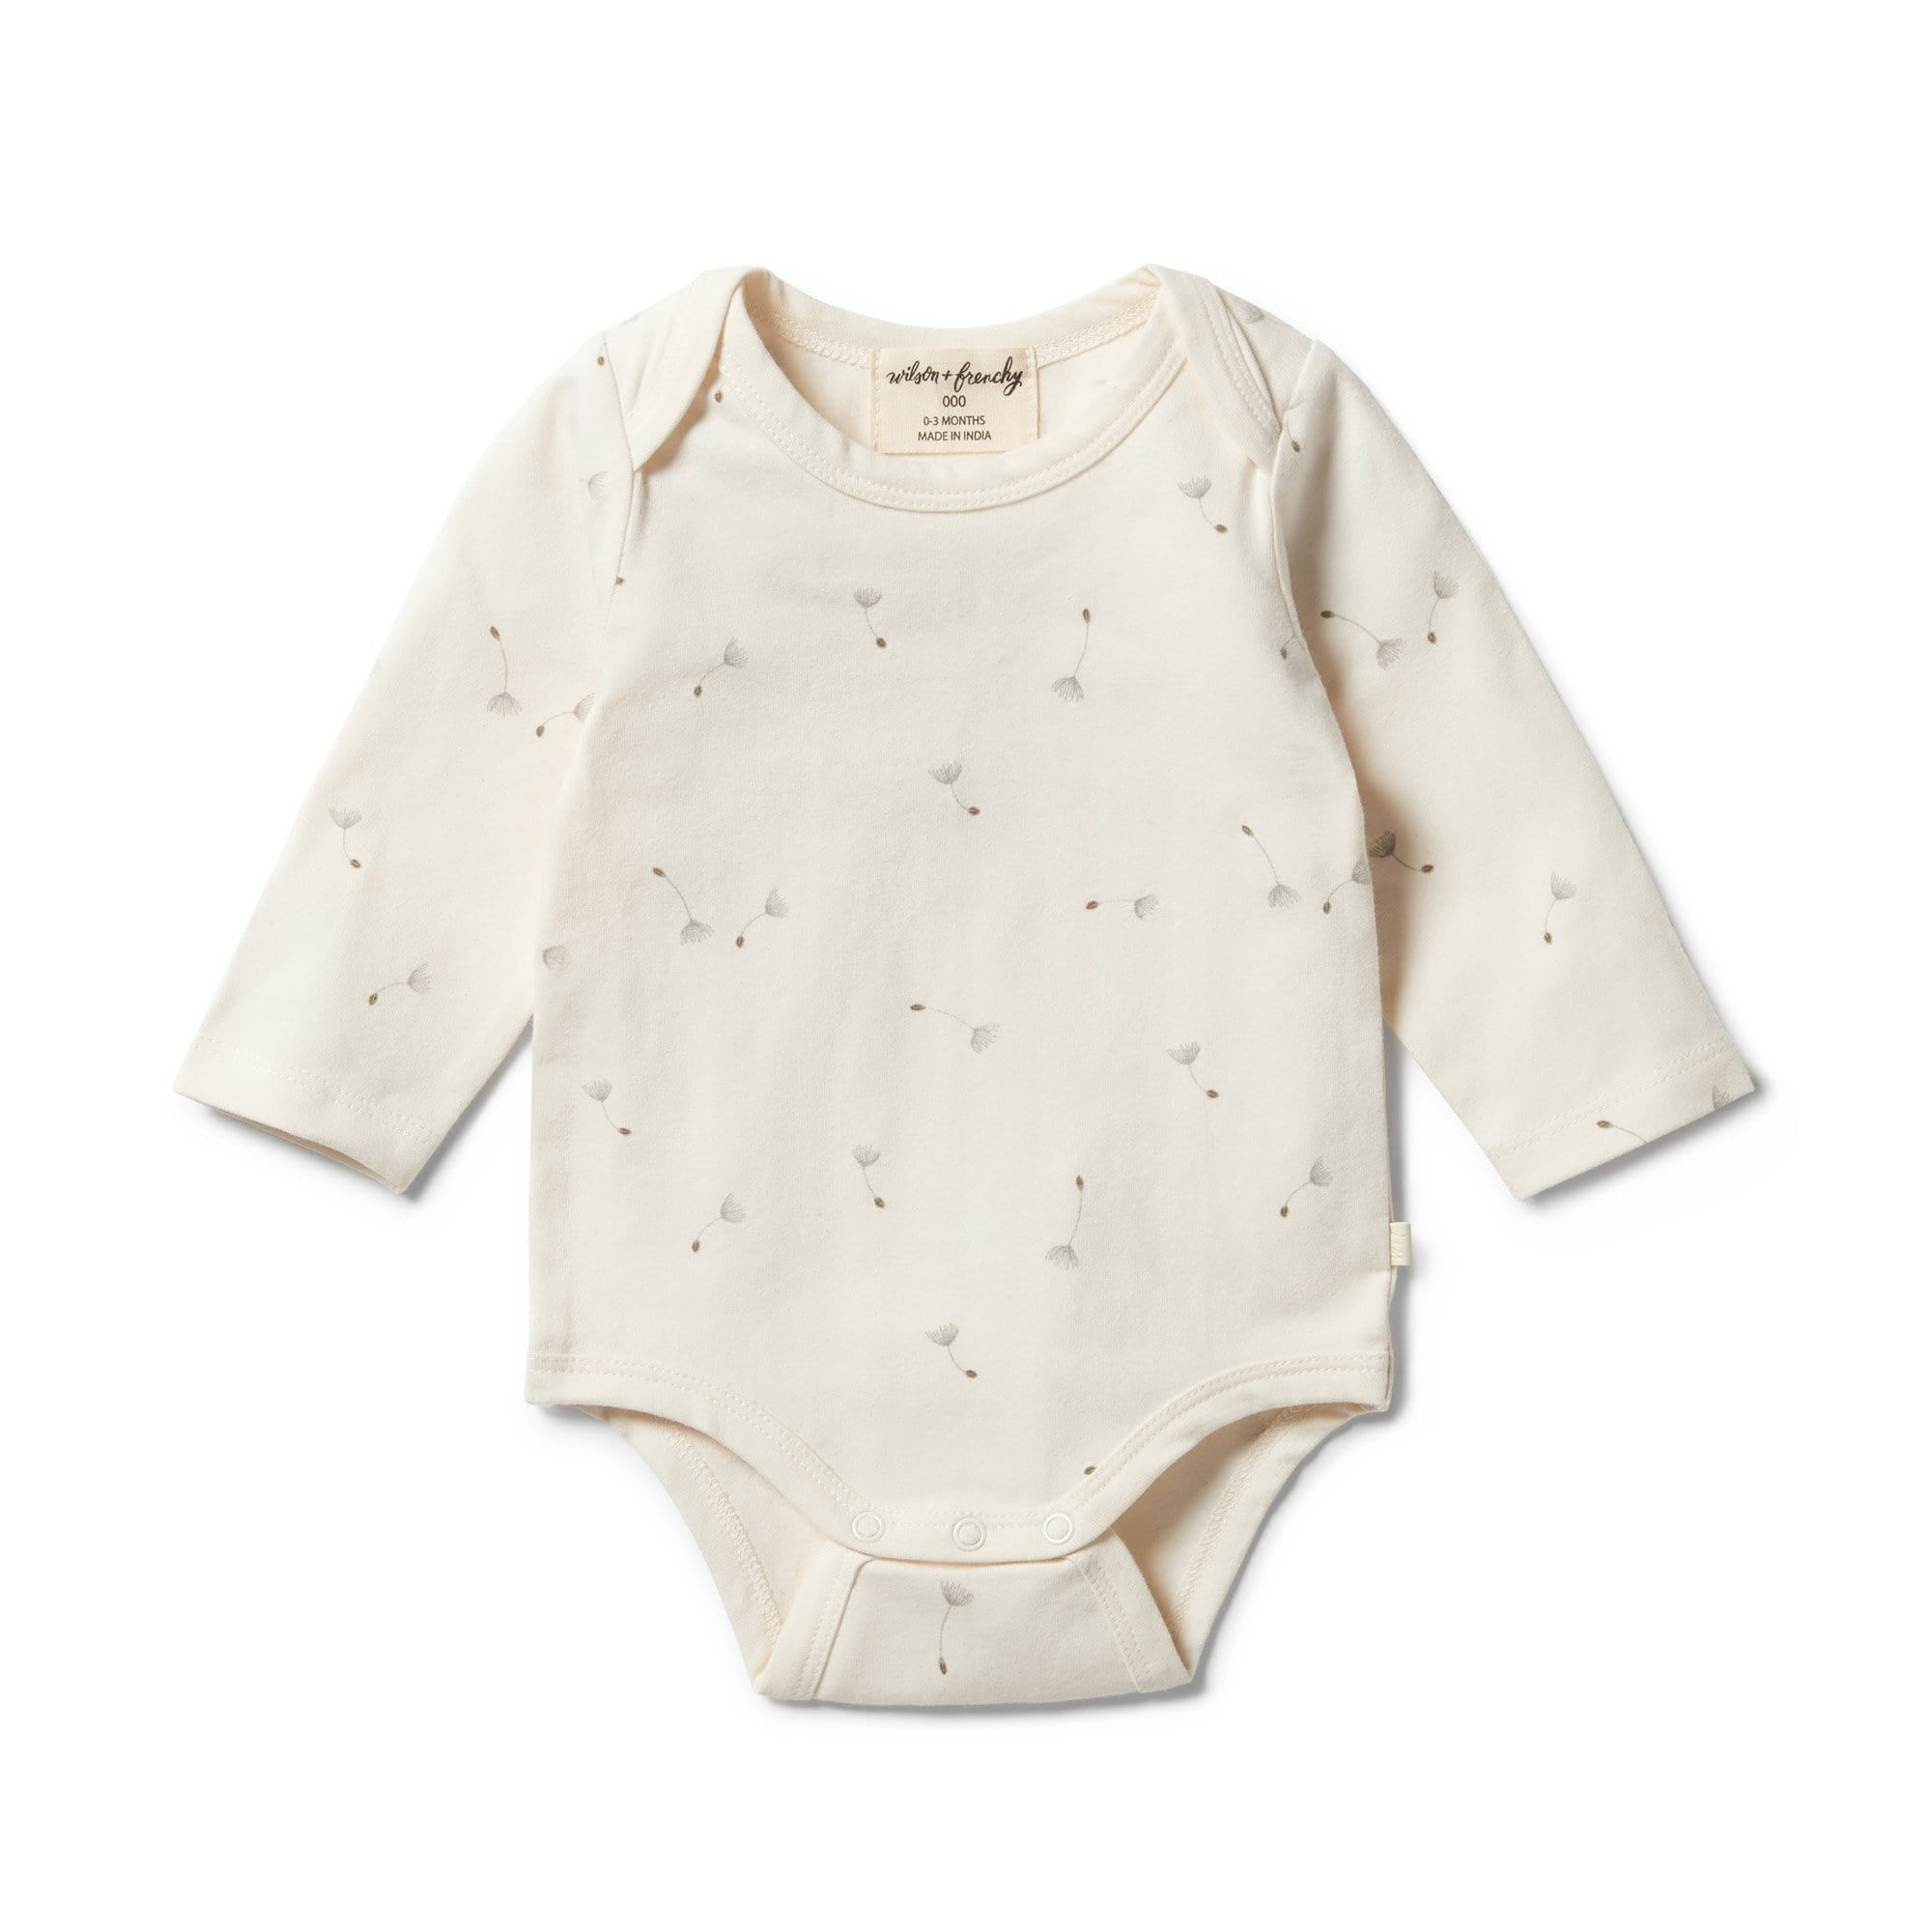 Wilson and Frenchy Organic Envelope Bodysuit - Floating Dandelions